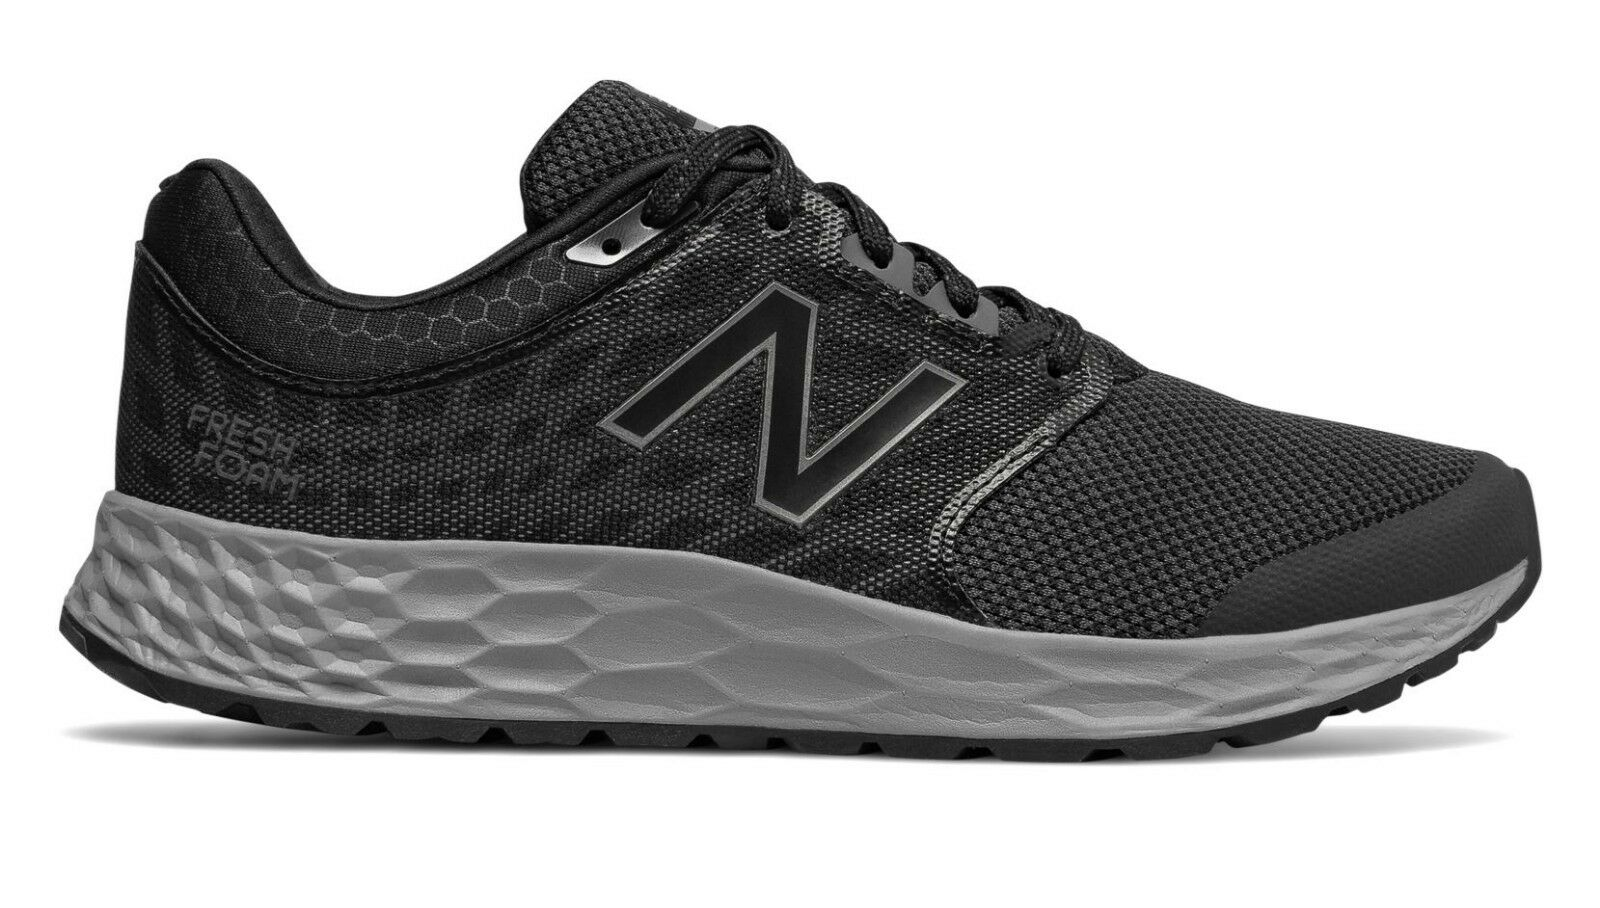 New Balance MW1165BK Mens Fresh Foam 1165v1 Black Grey Lightweight Walking shoes